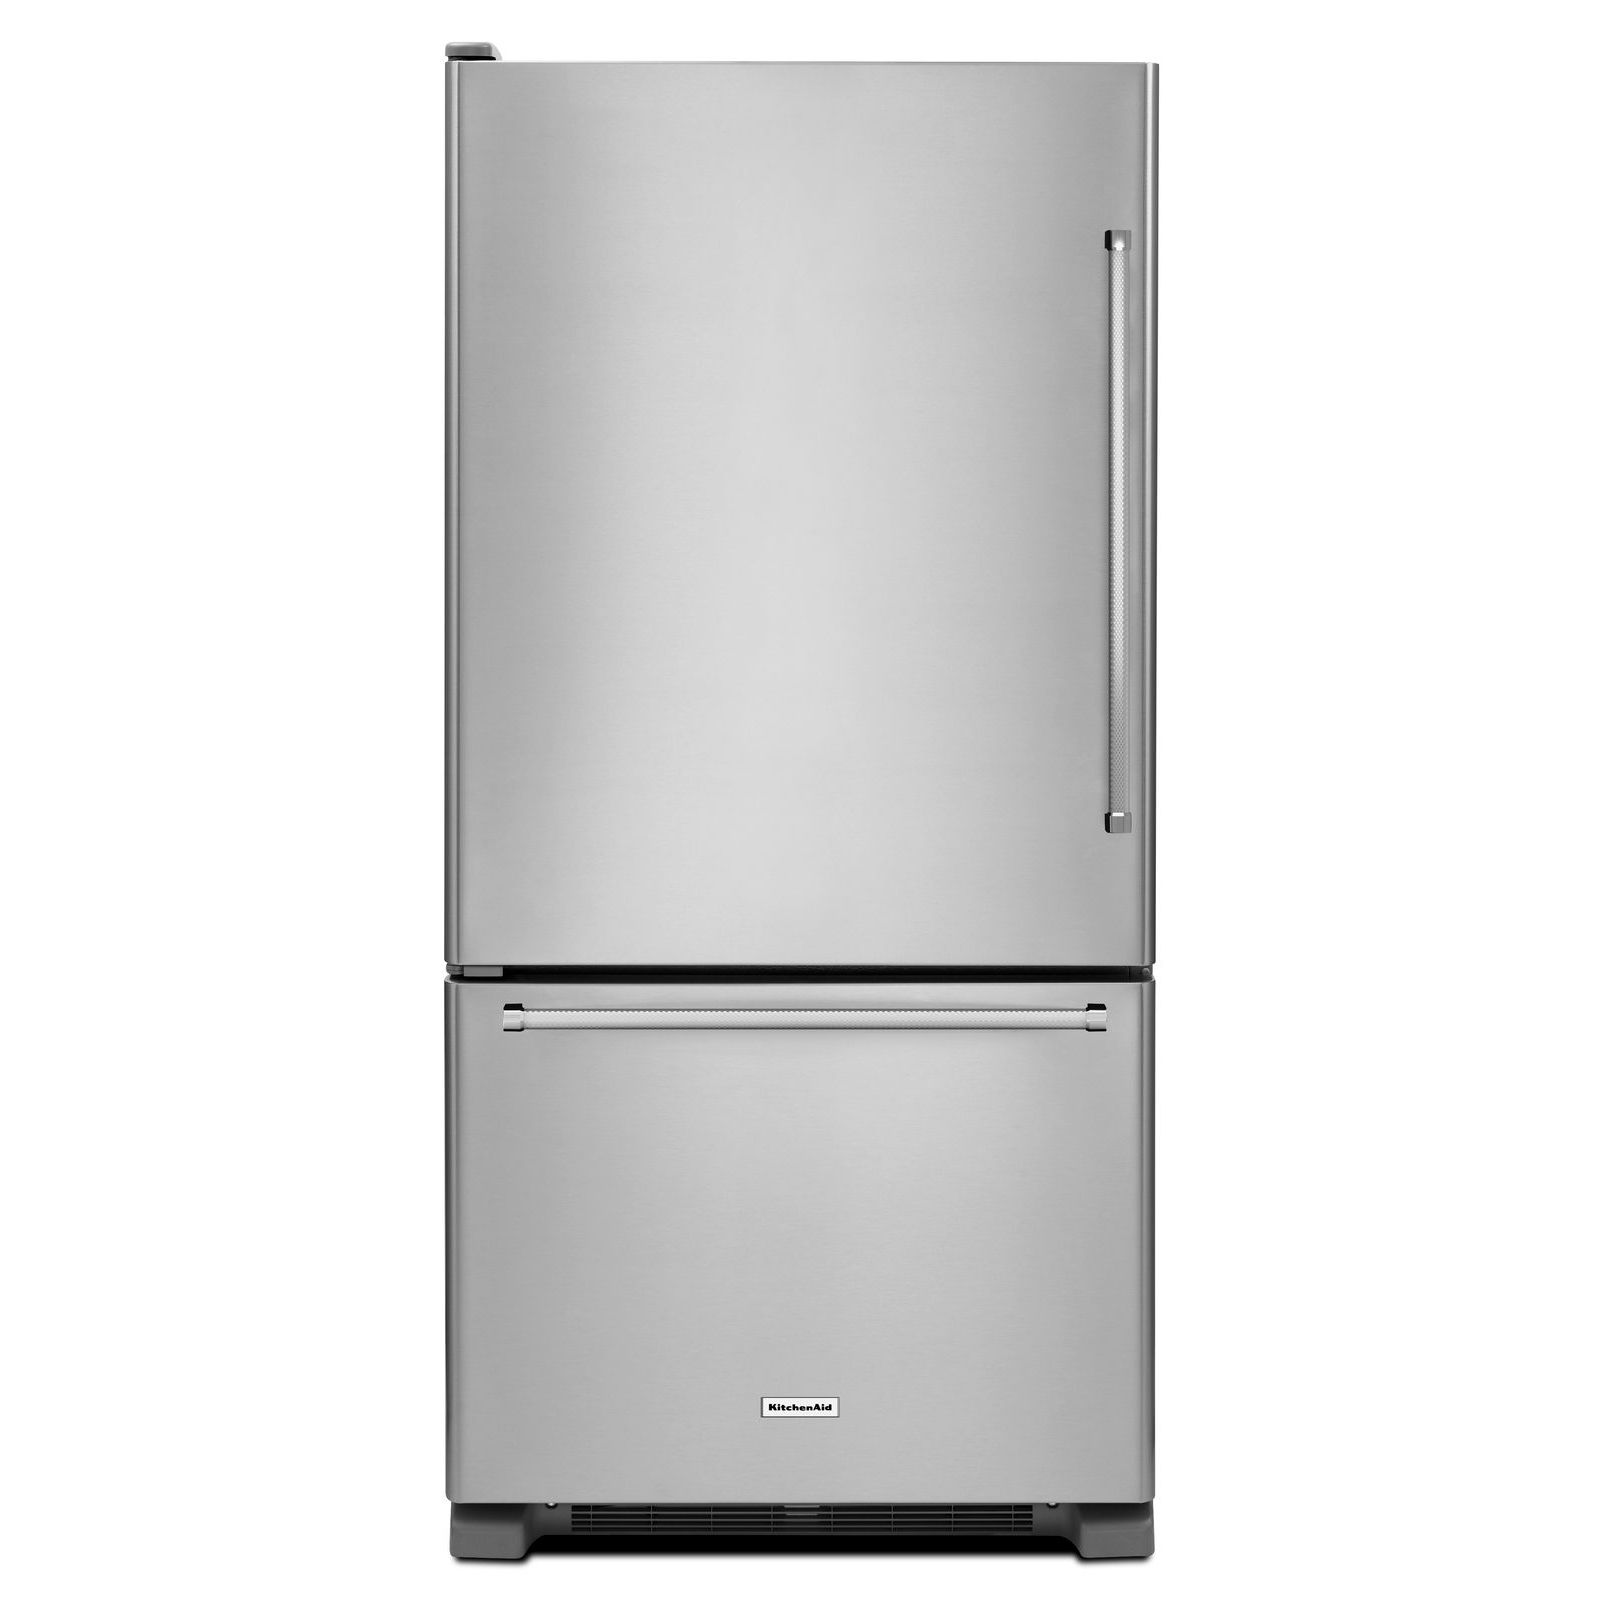 KitchenAid KRBL102ESS 22 cu. ft. Bottom Mount Refrigerator - Stainless Steel